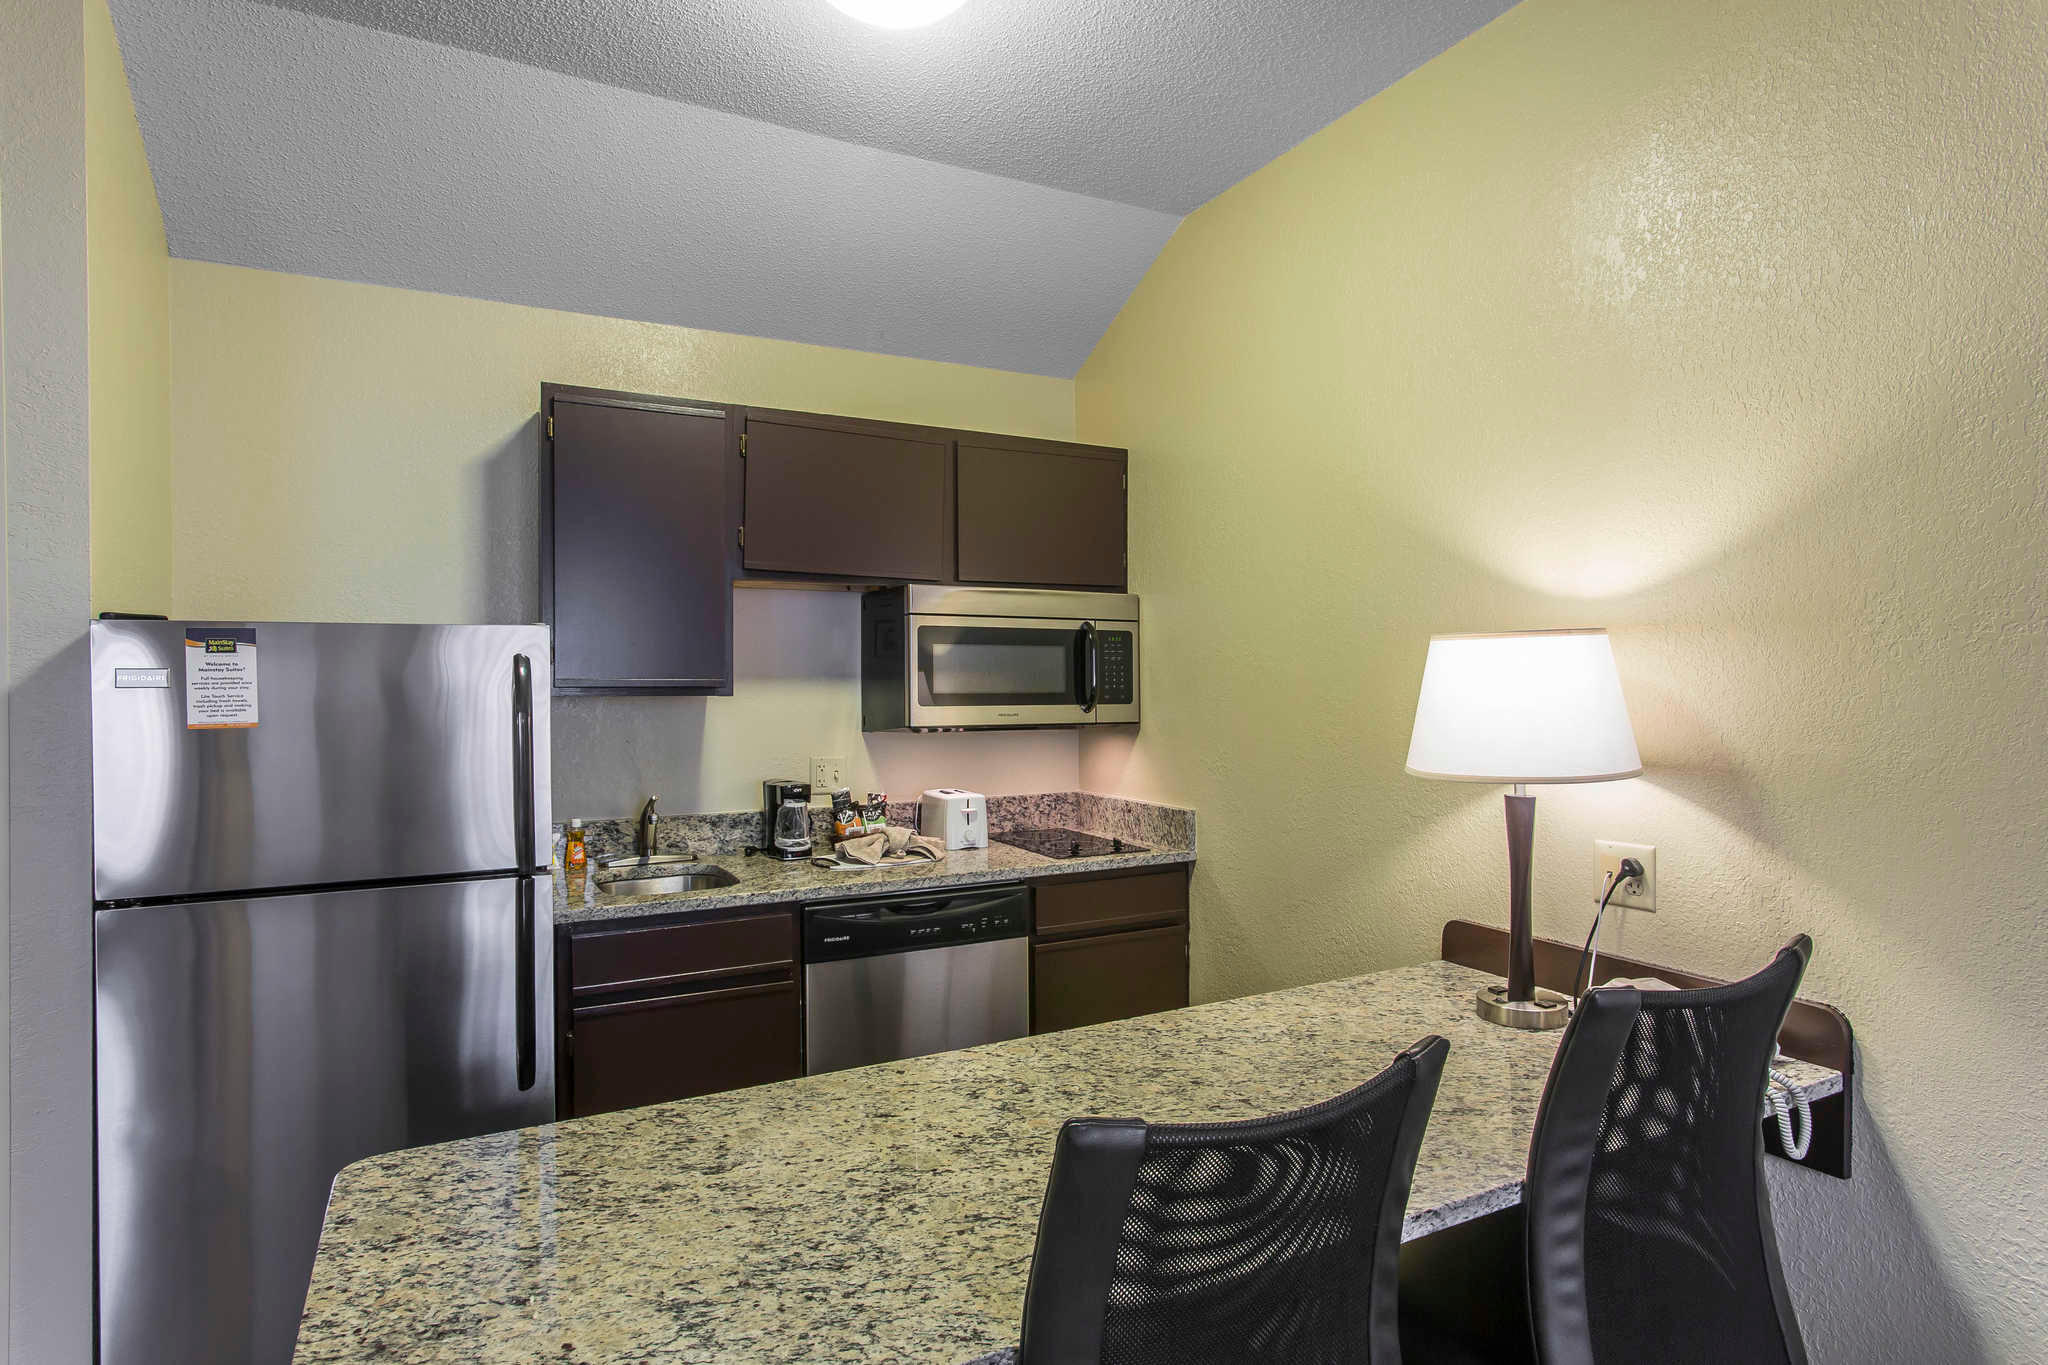 MainStay Suites image 32